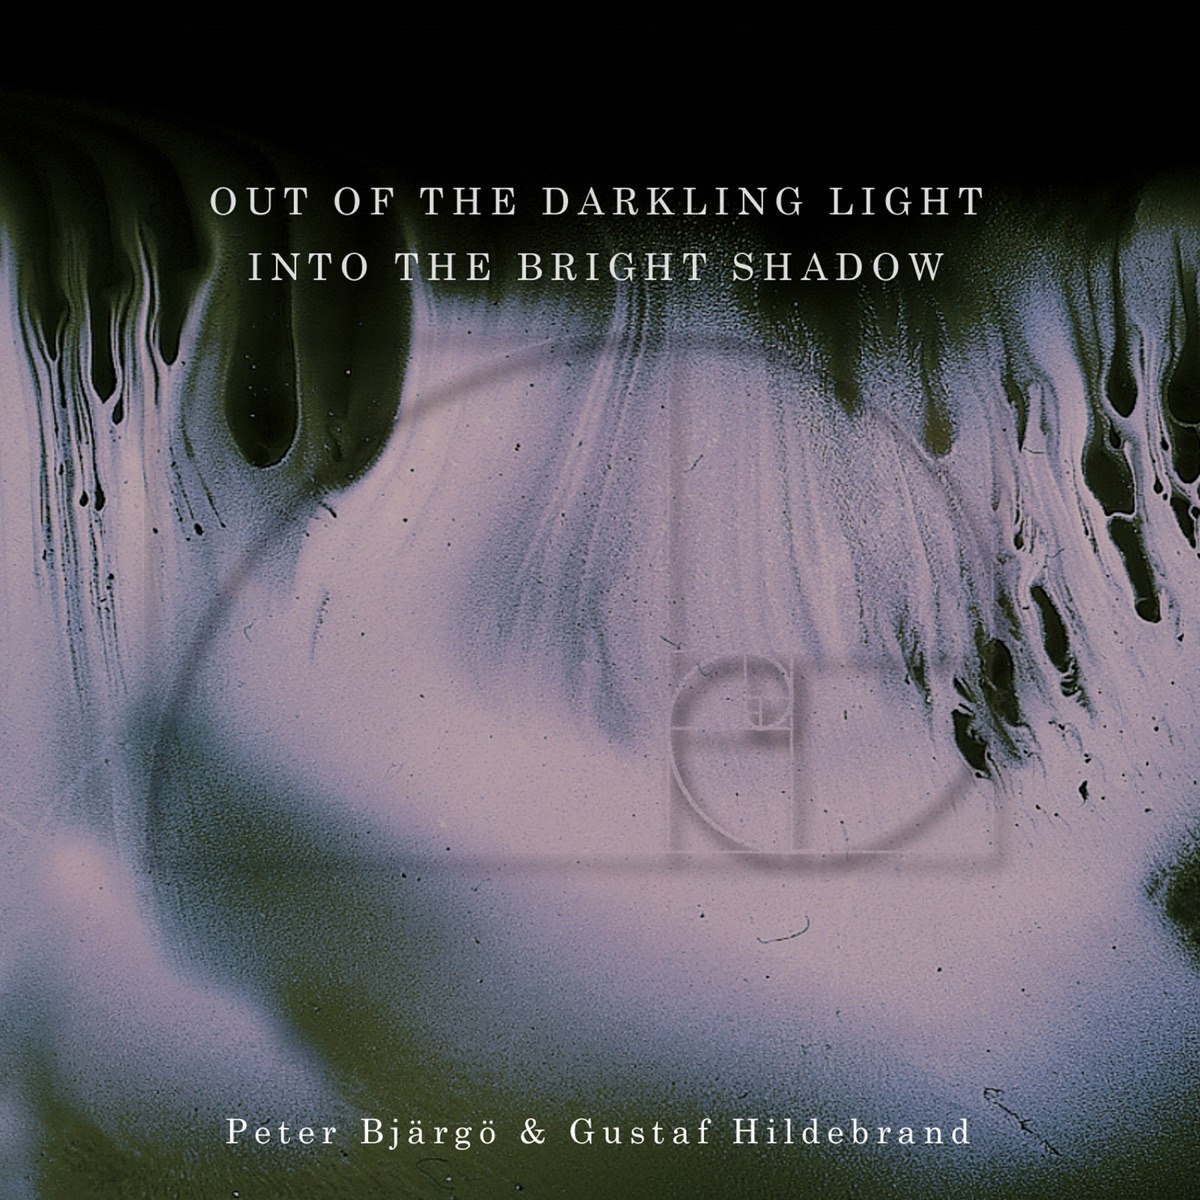 Out of the Darkling Light Into the Bright Shadow Peter Bjärgö  Gustaf Hildebrand CD cover